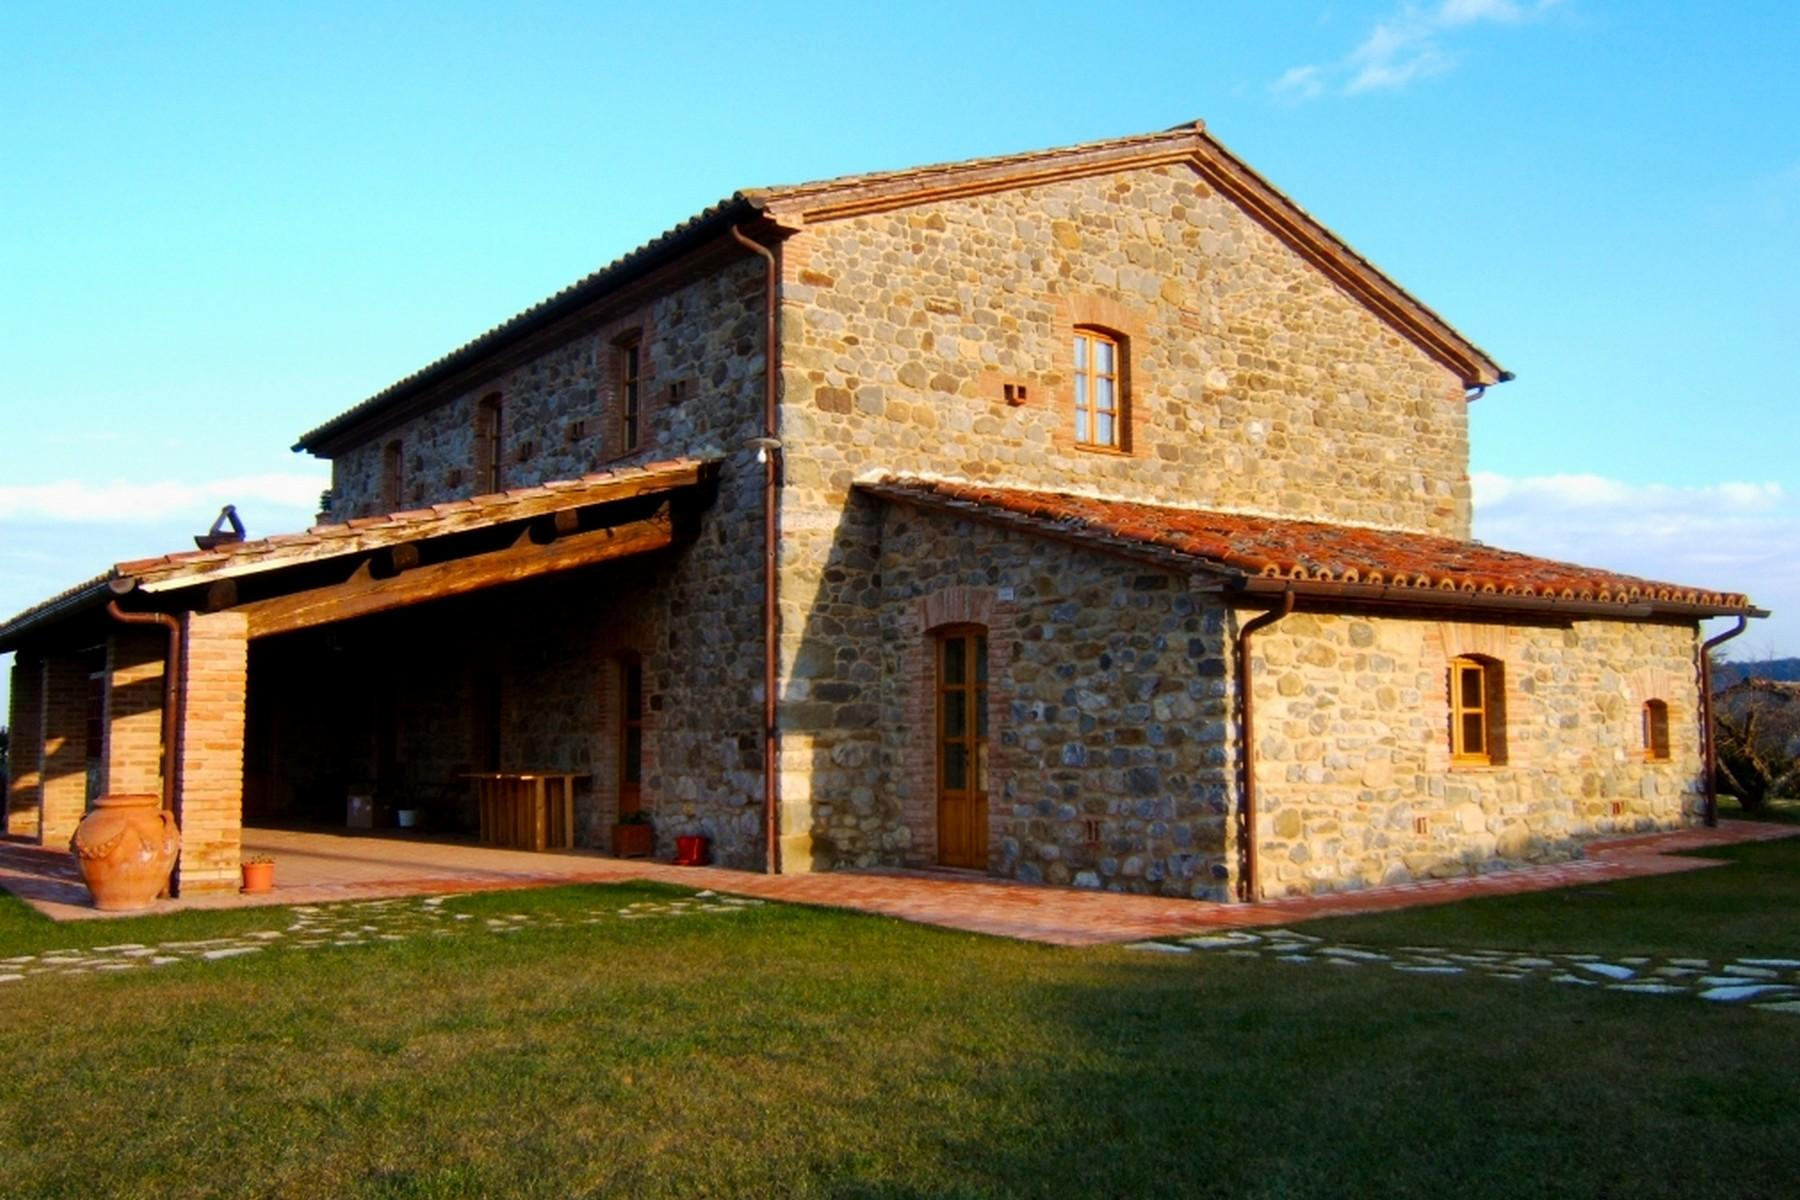 Enchanting farmhouse in Umbrian countryside - 8